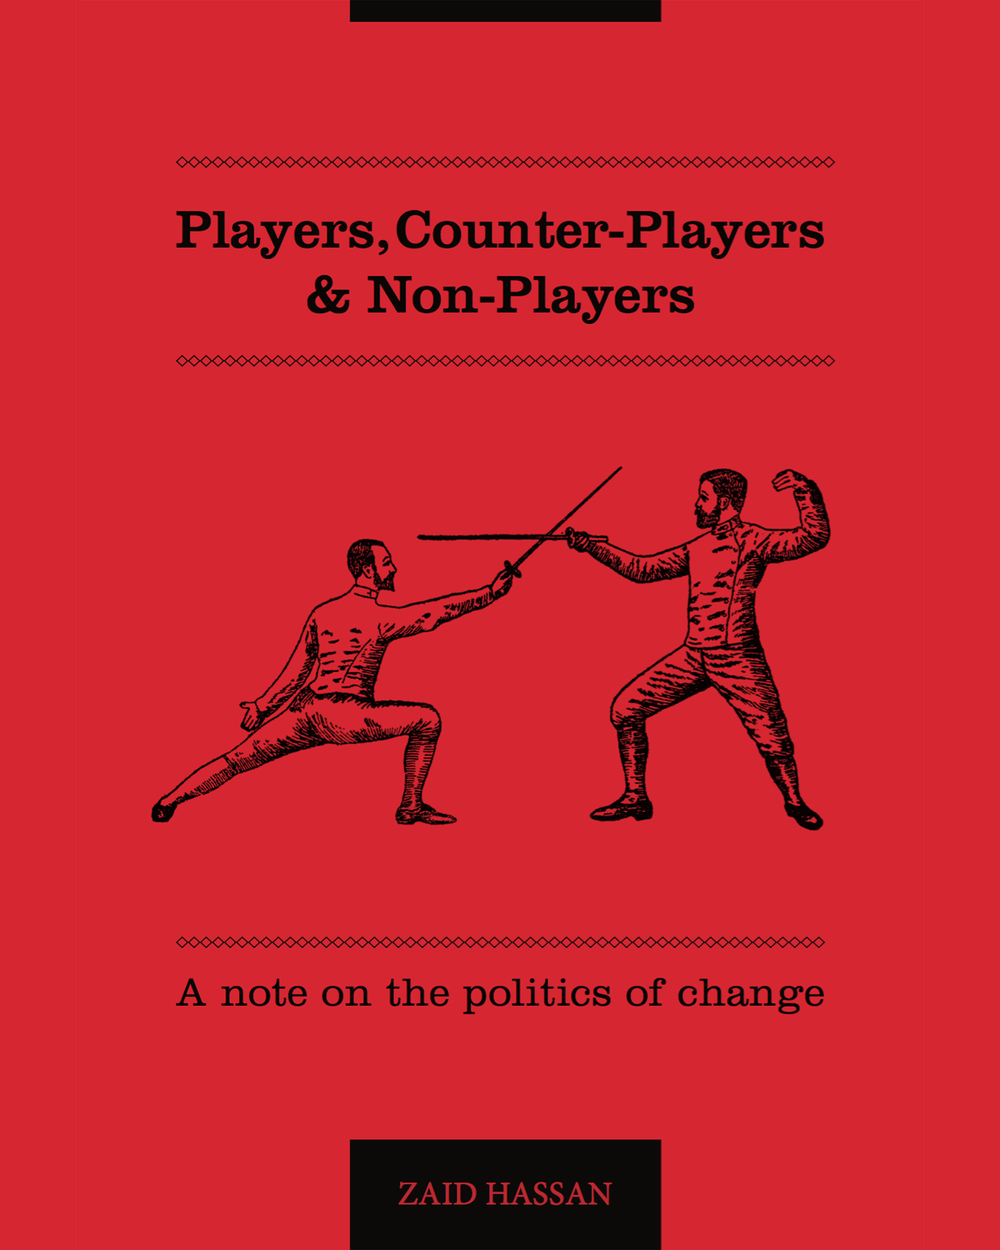 players, counter-players & non-players | 'paradigm shakers' essay